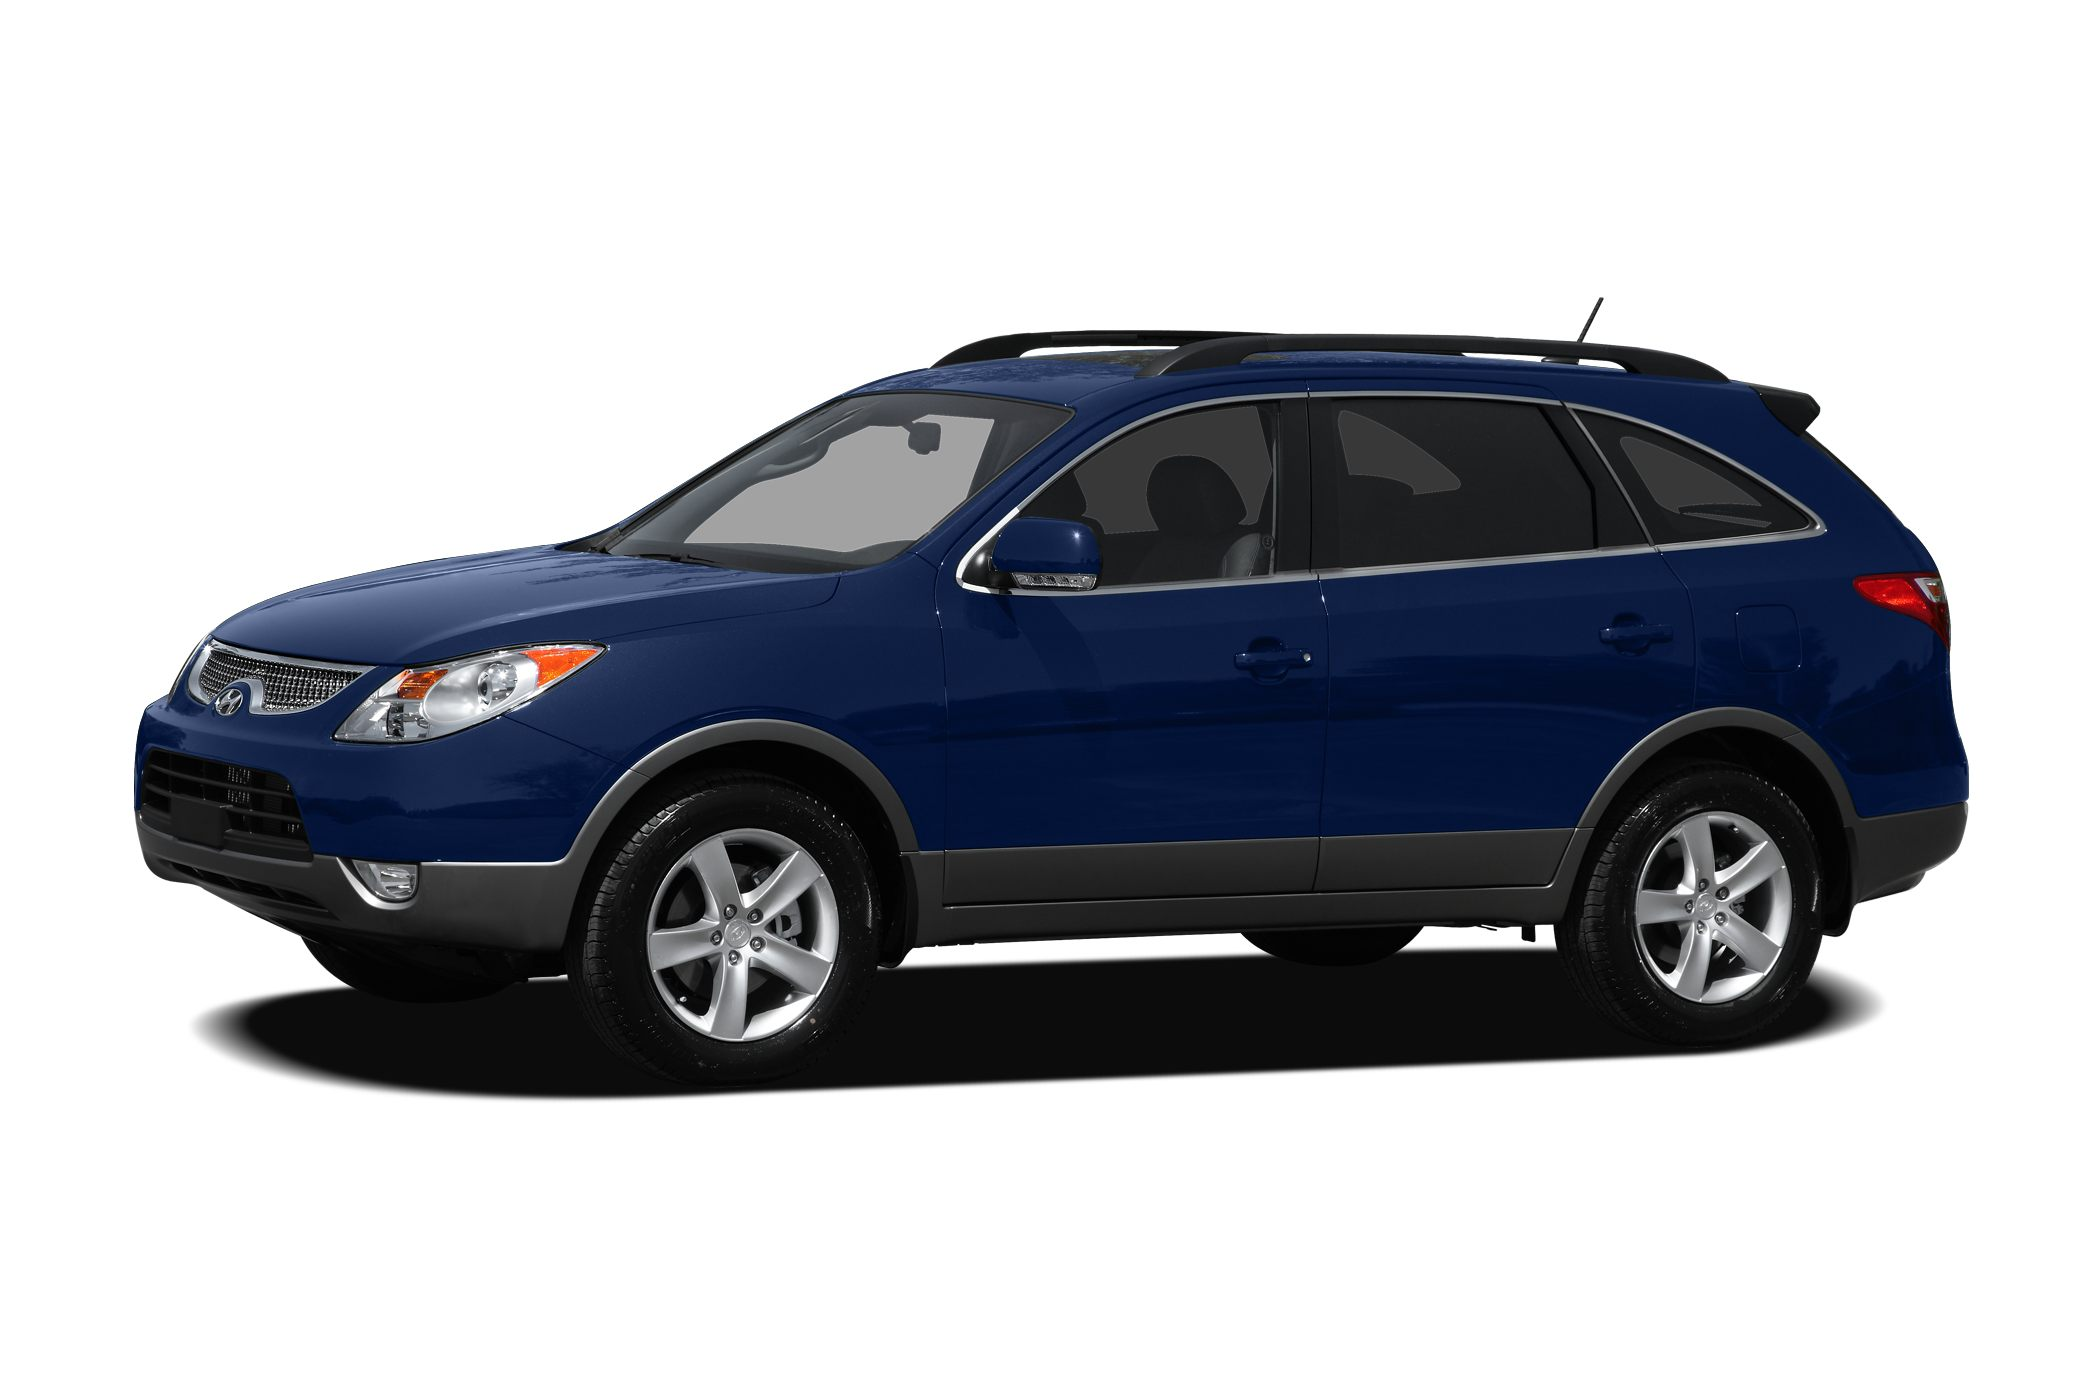 2010 Hyundai Veracruz GLS SUV for sale in Lithia Springs for $11,951 with 75,558 miles